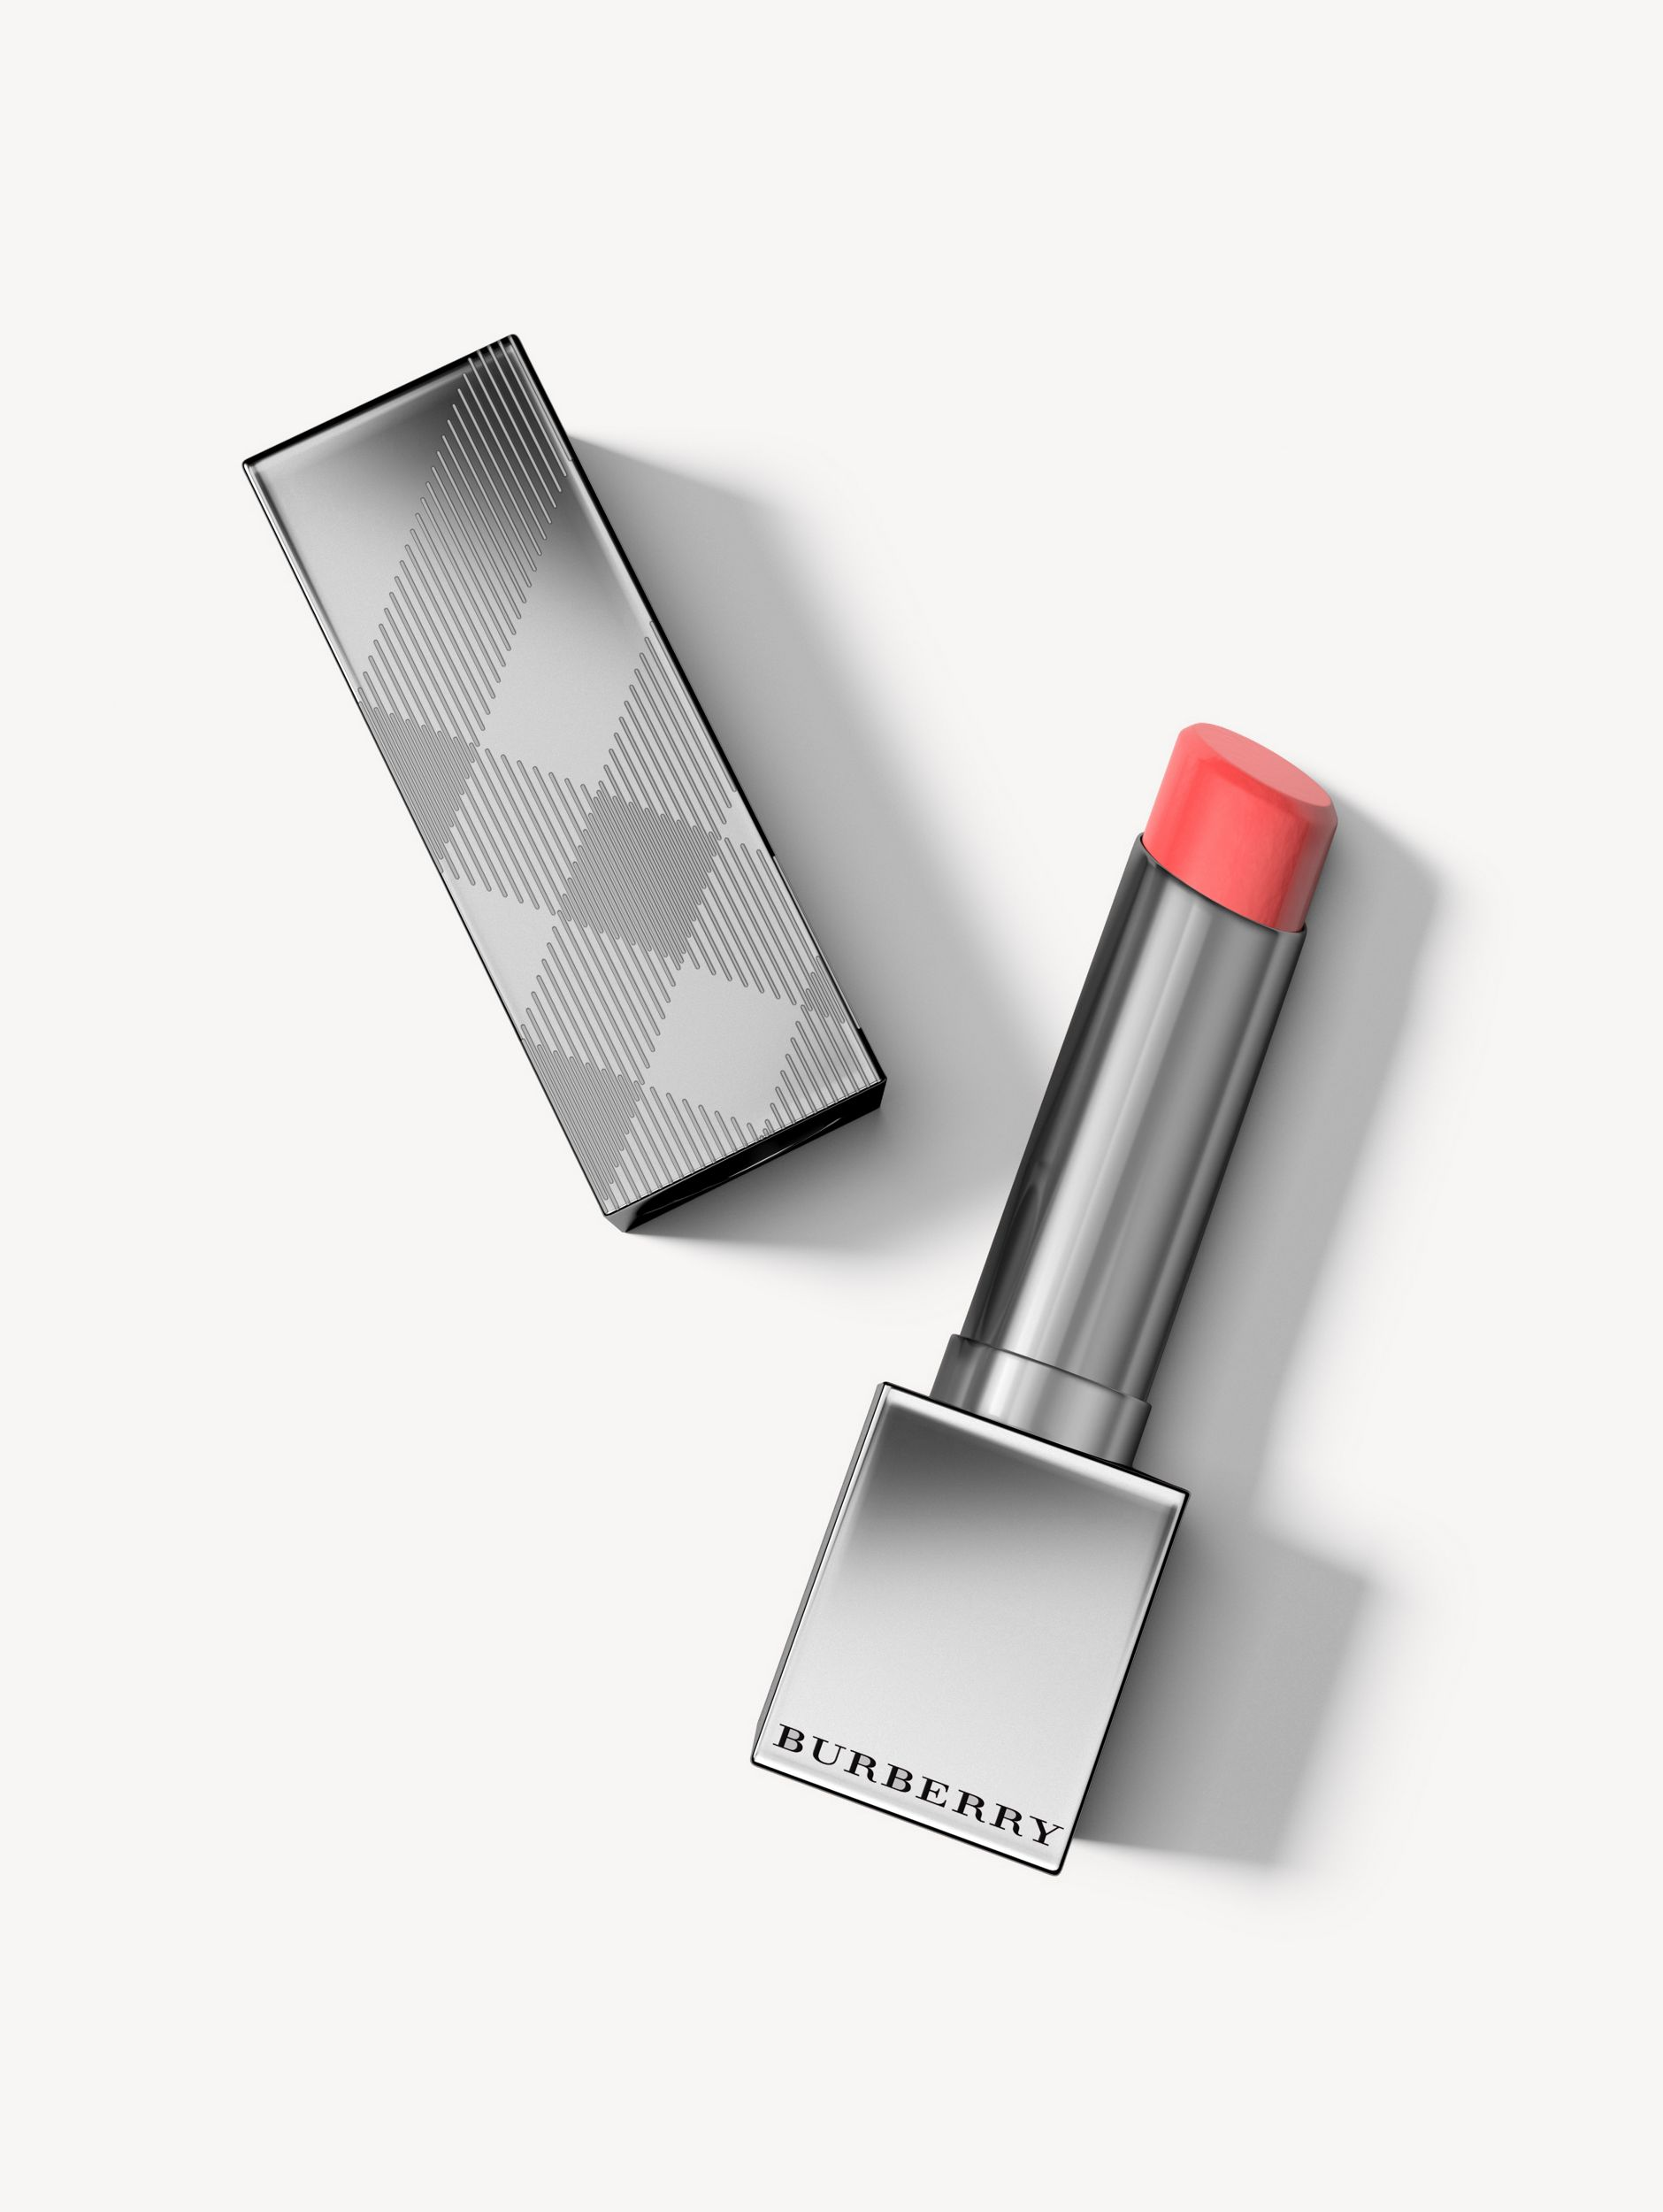 Burberry Kisses Sheer – Coral Pink No.265 - Women | Burberry United States - 1